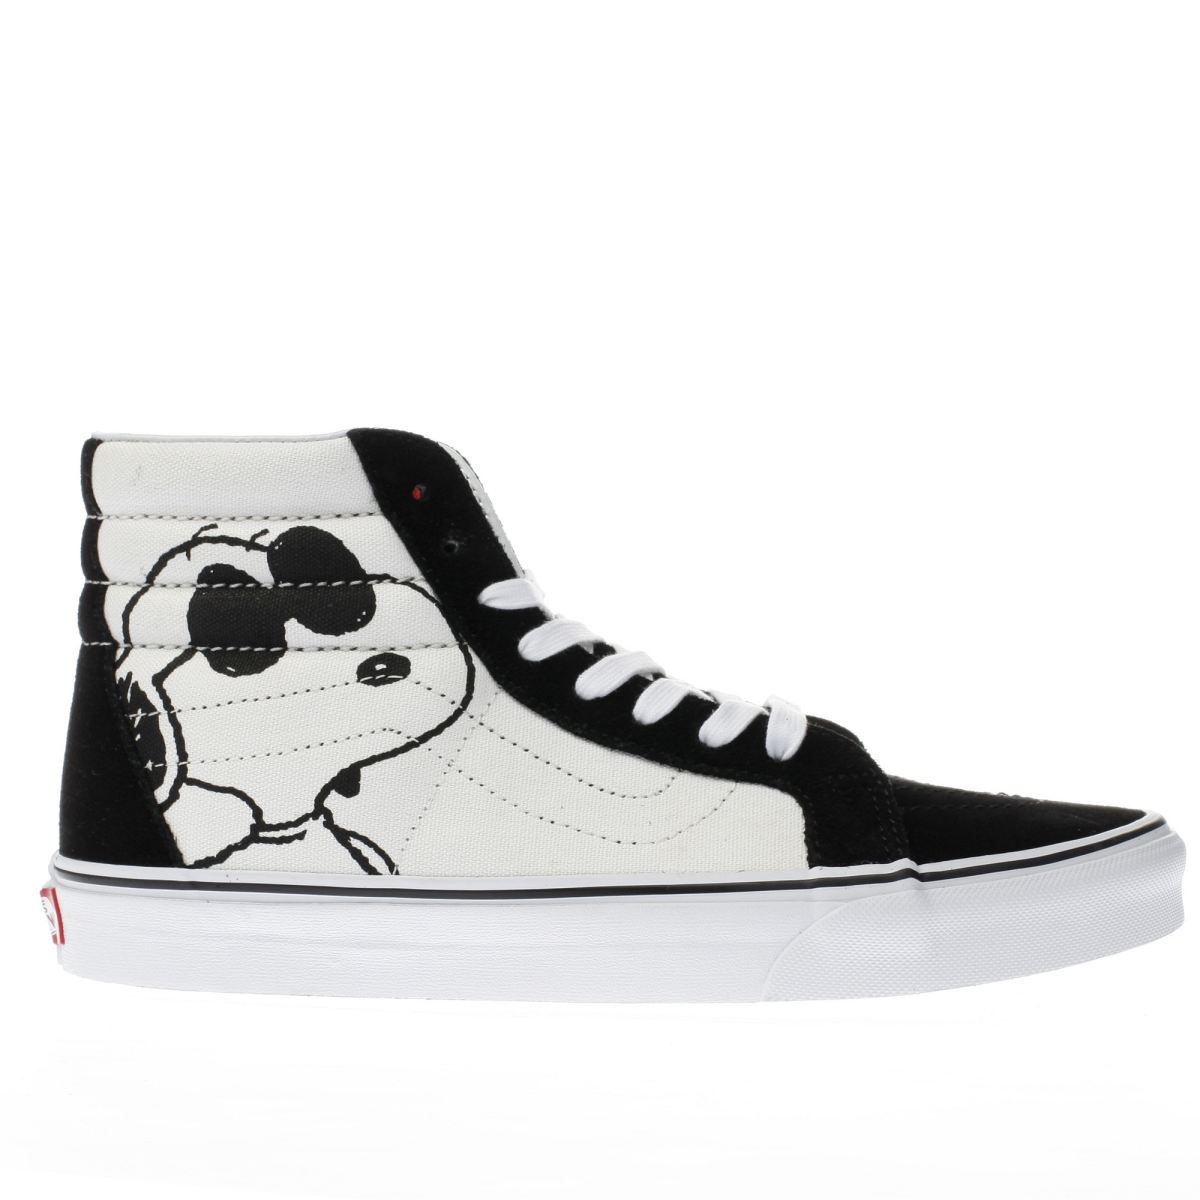 vans white & black sk8-hi peanuts joe cool trainers